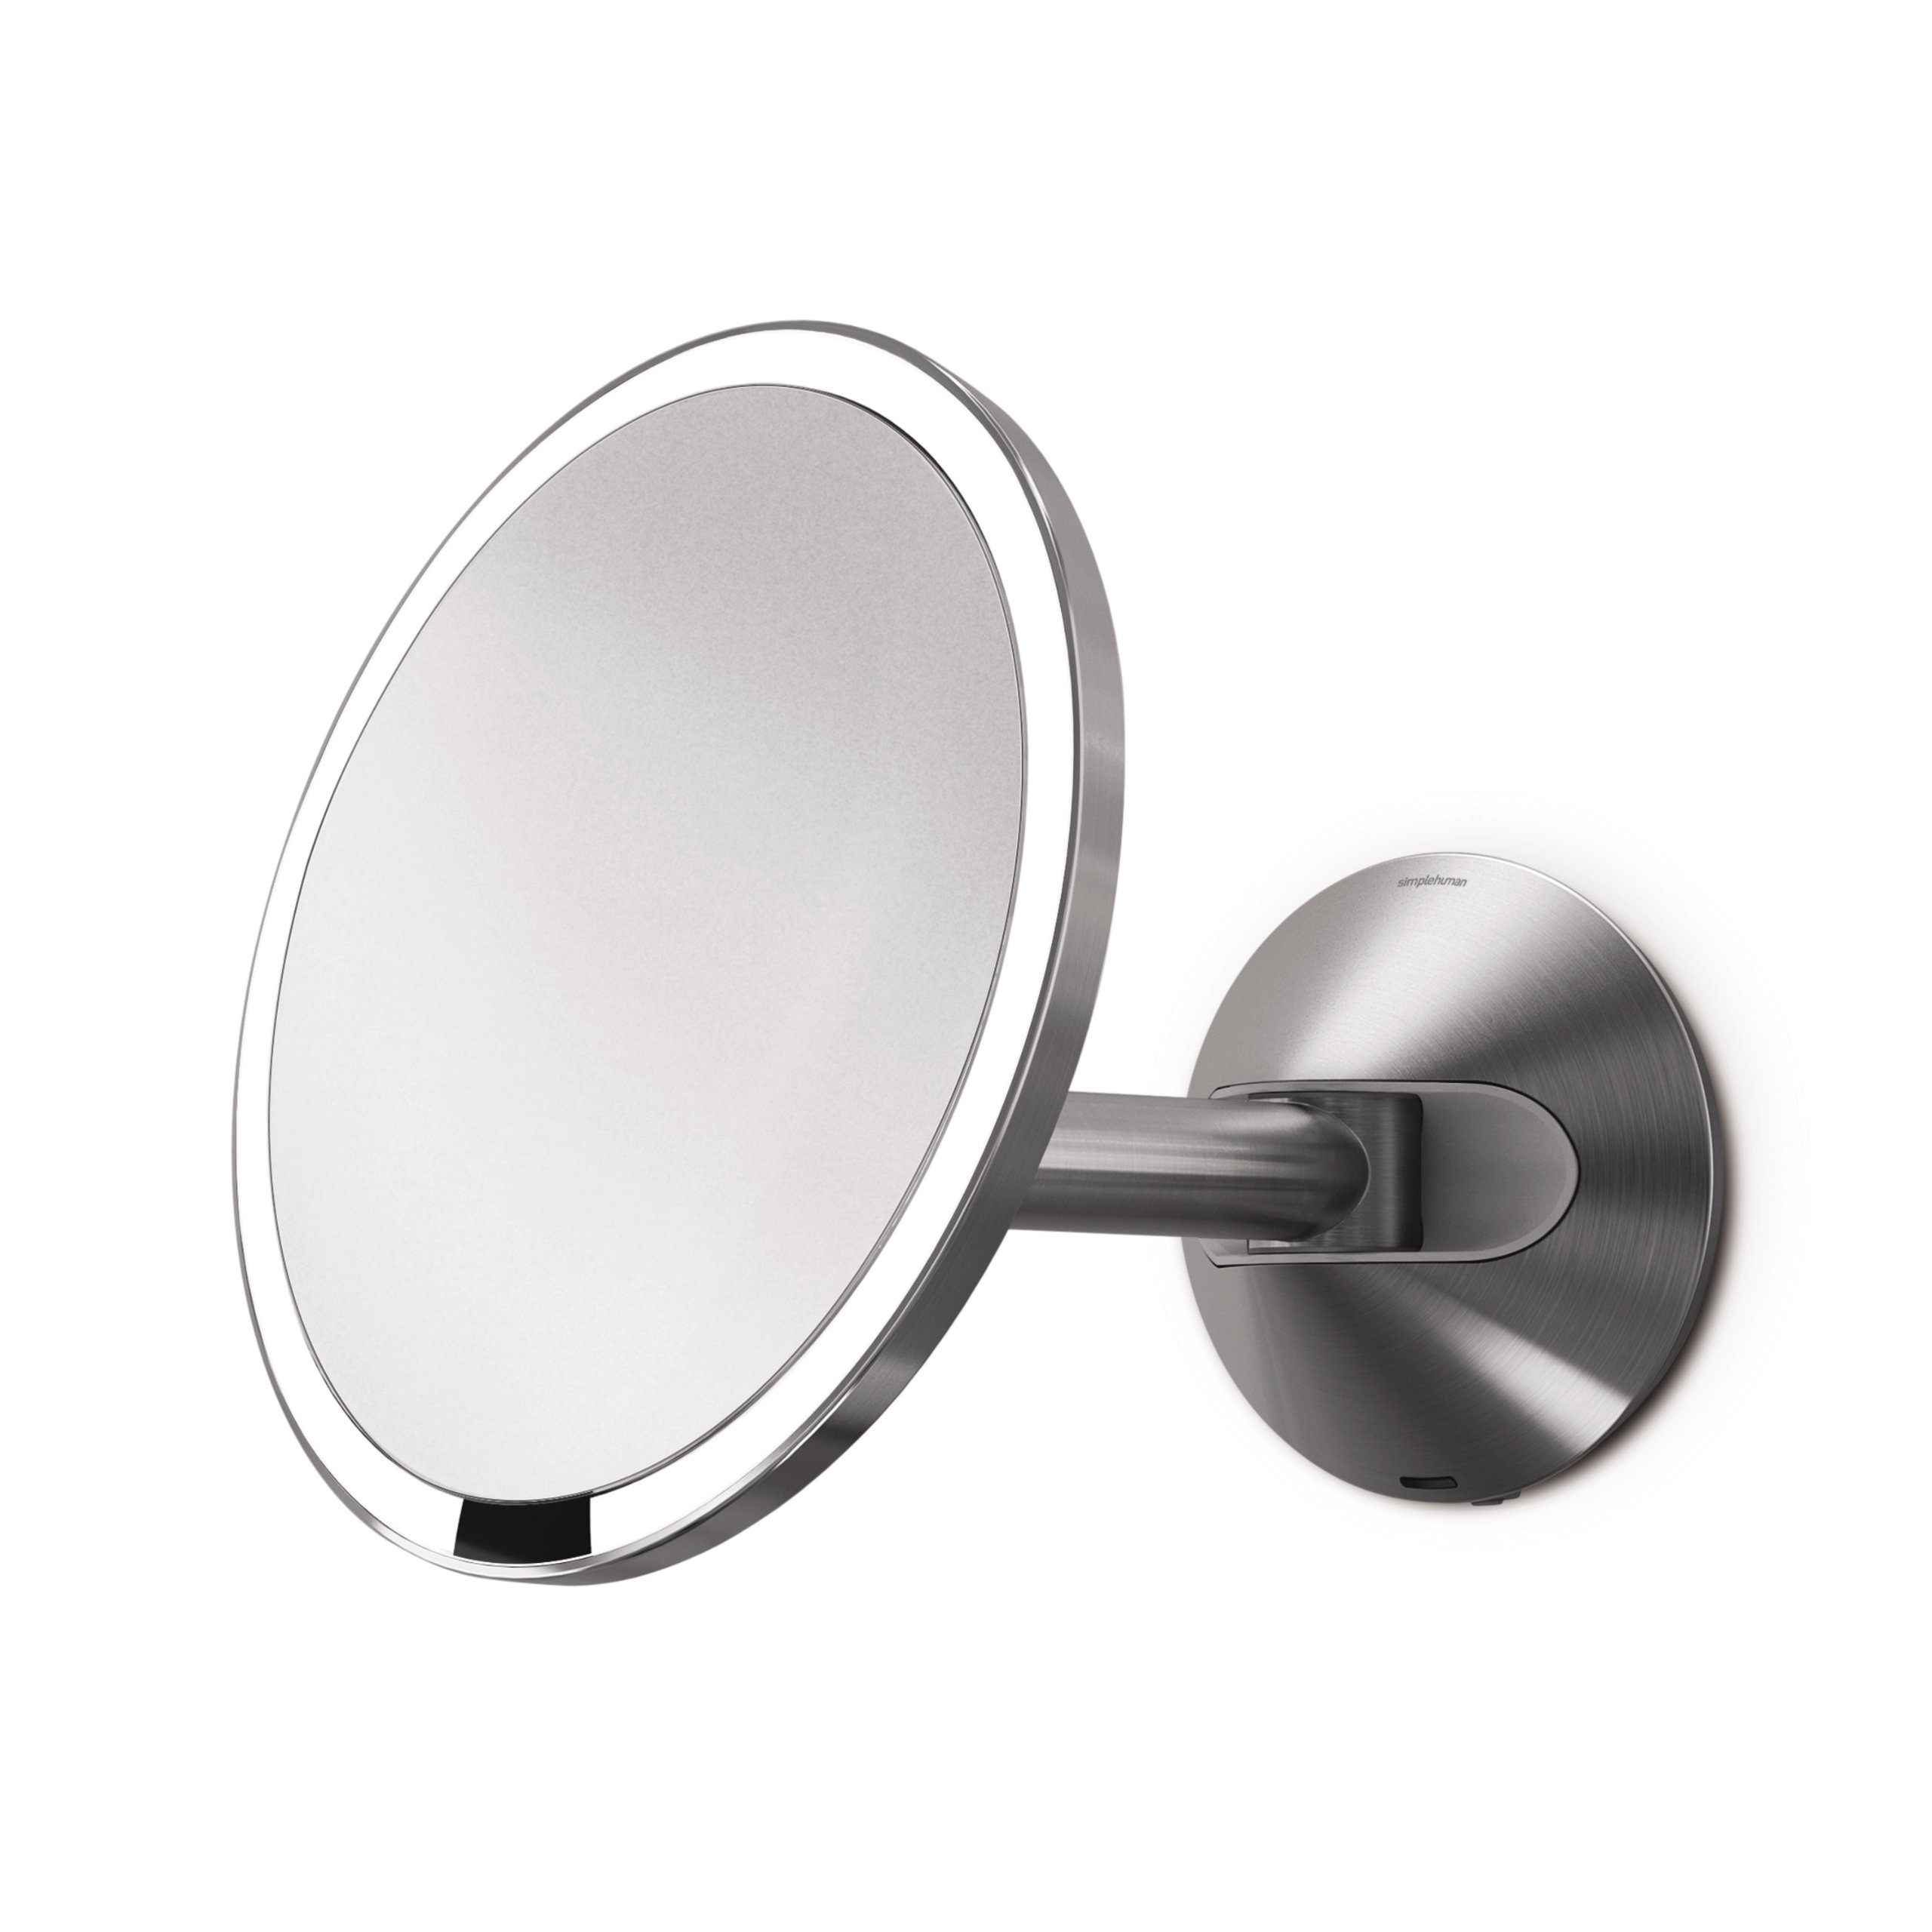 simplehuman 8 inch Wall Mount Sensor Mirror, Lighted Makeup Mirror, Rechargeable 5x Magnification by simplehuman (Image #2)